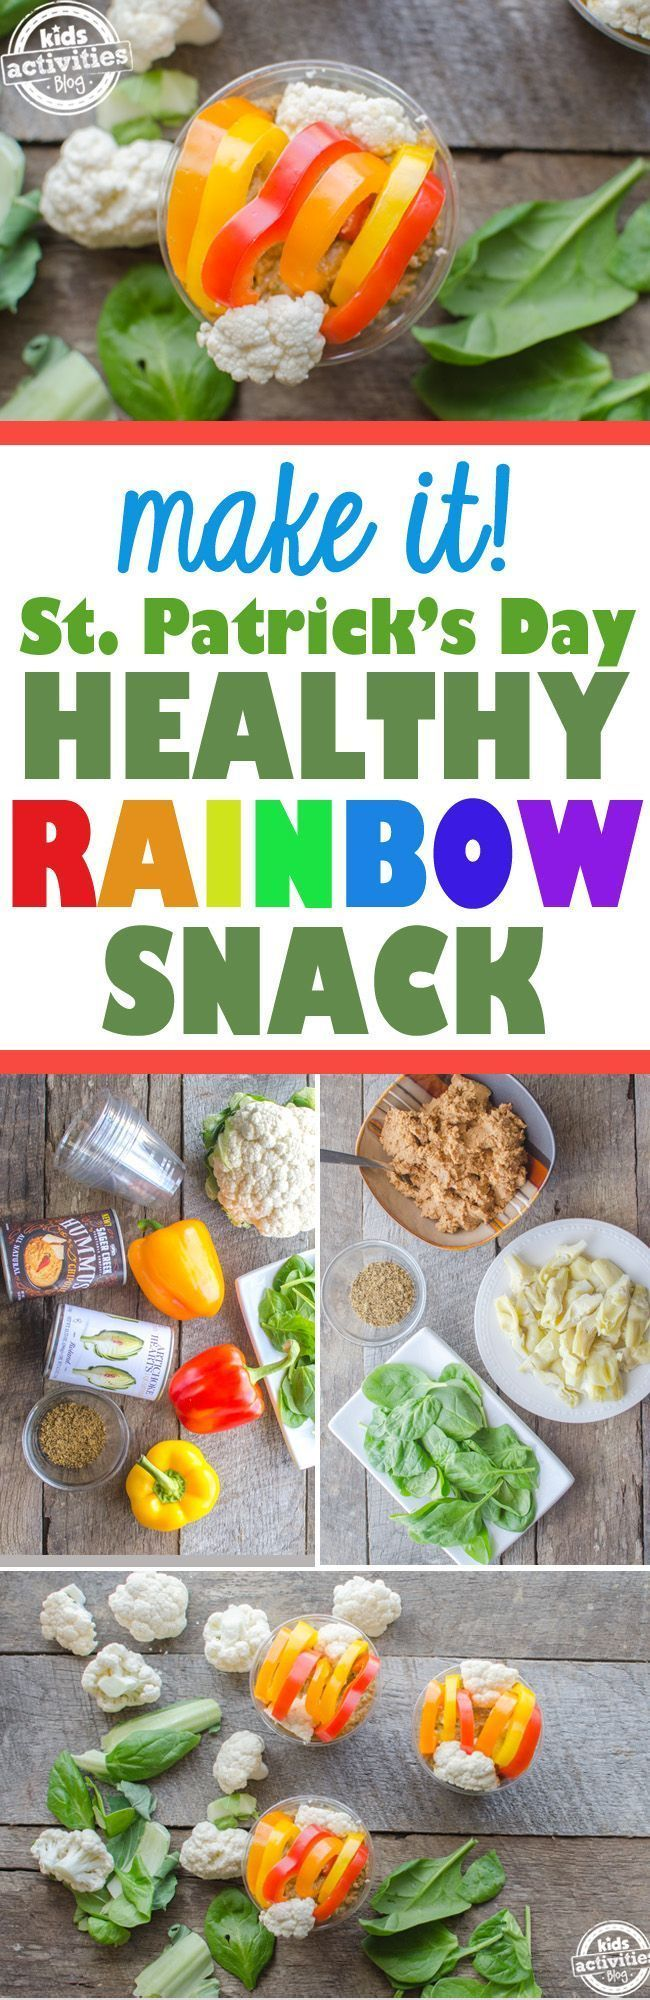 Edible Rainbow Craft: A Healthy St. Patrick's Day Snack!